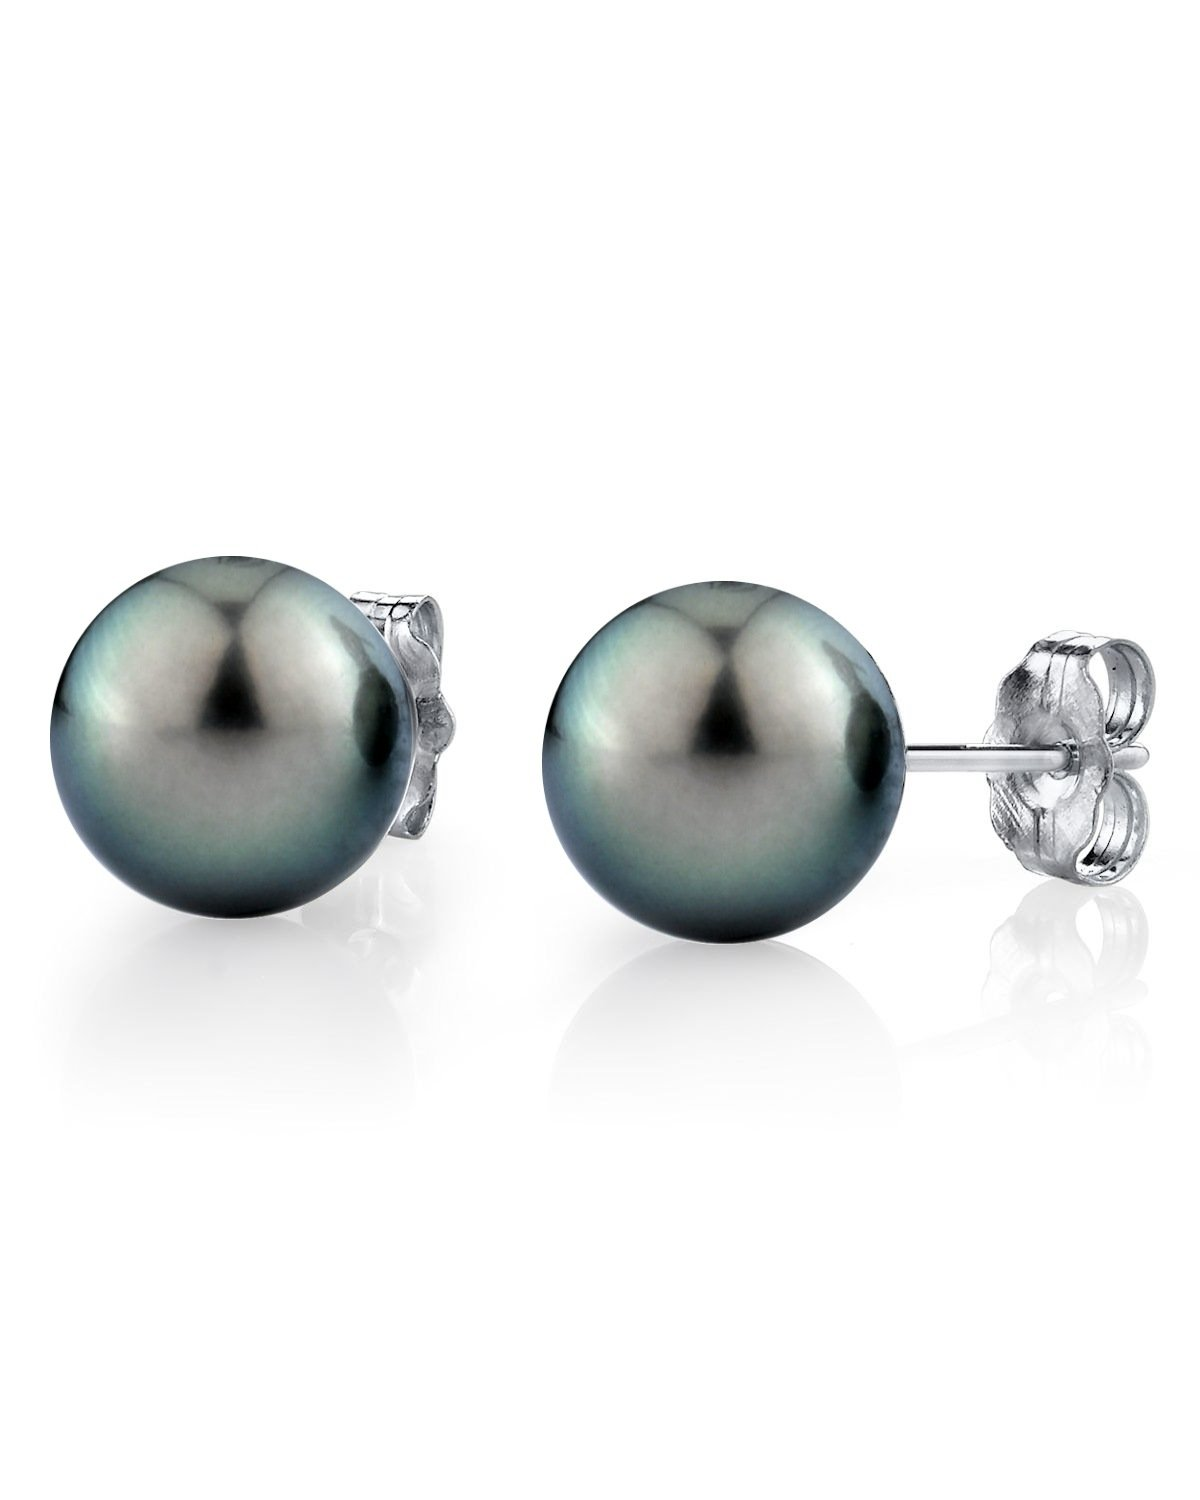 14K Gold 8-9mm Green Tahitian South Sea Cultured Pearl Stud Earrings - AAA Quality